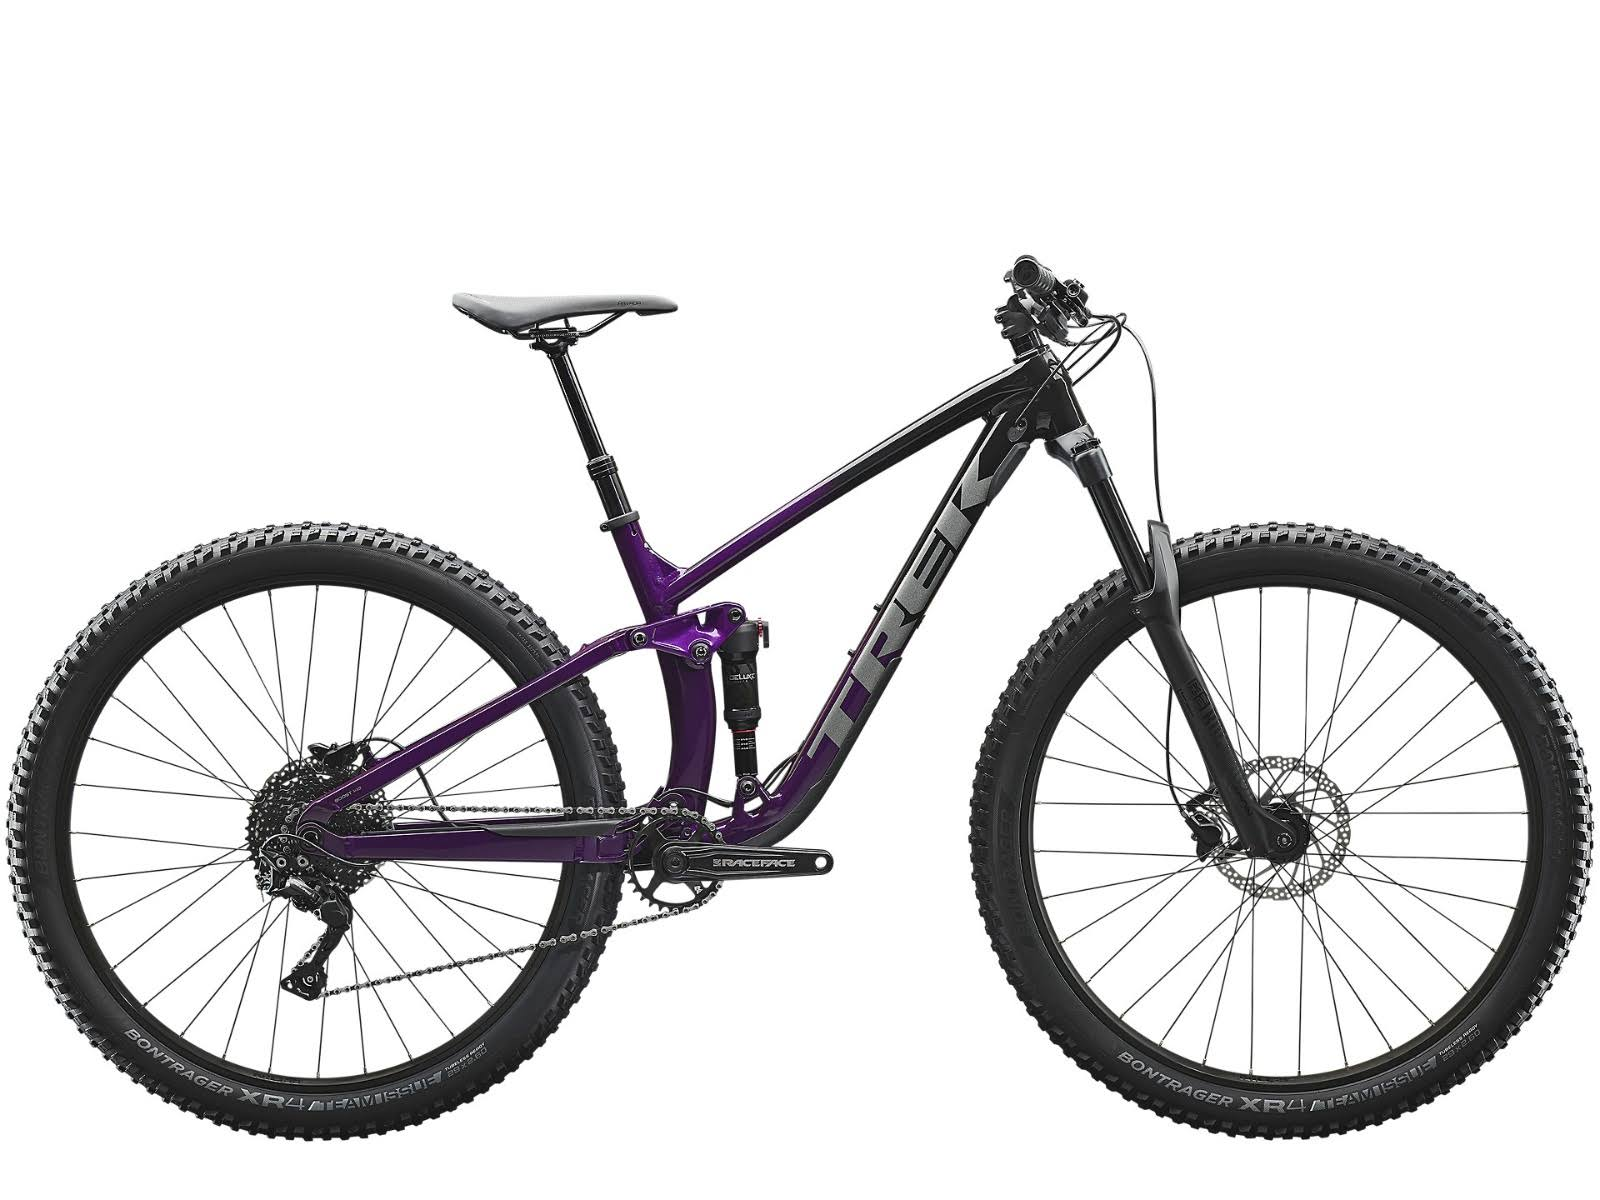 Trek 590348 Fuel EX 5 Road Bike - Black and Purple, 29""